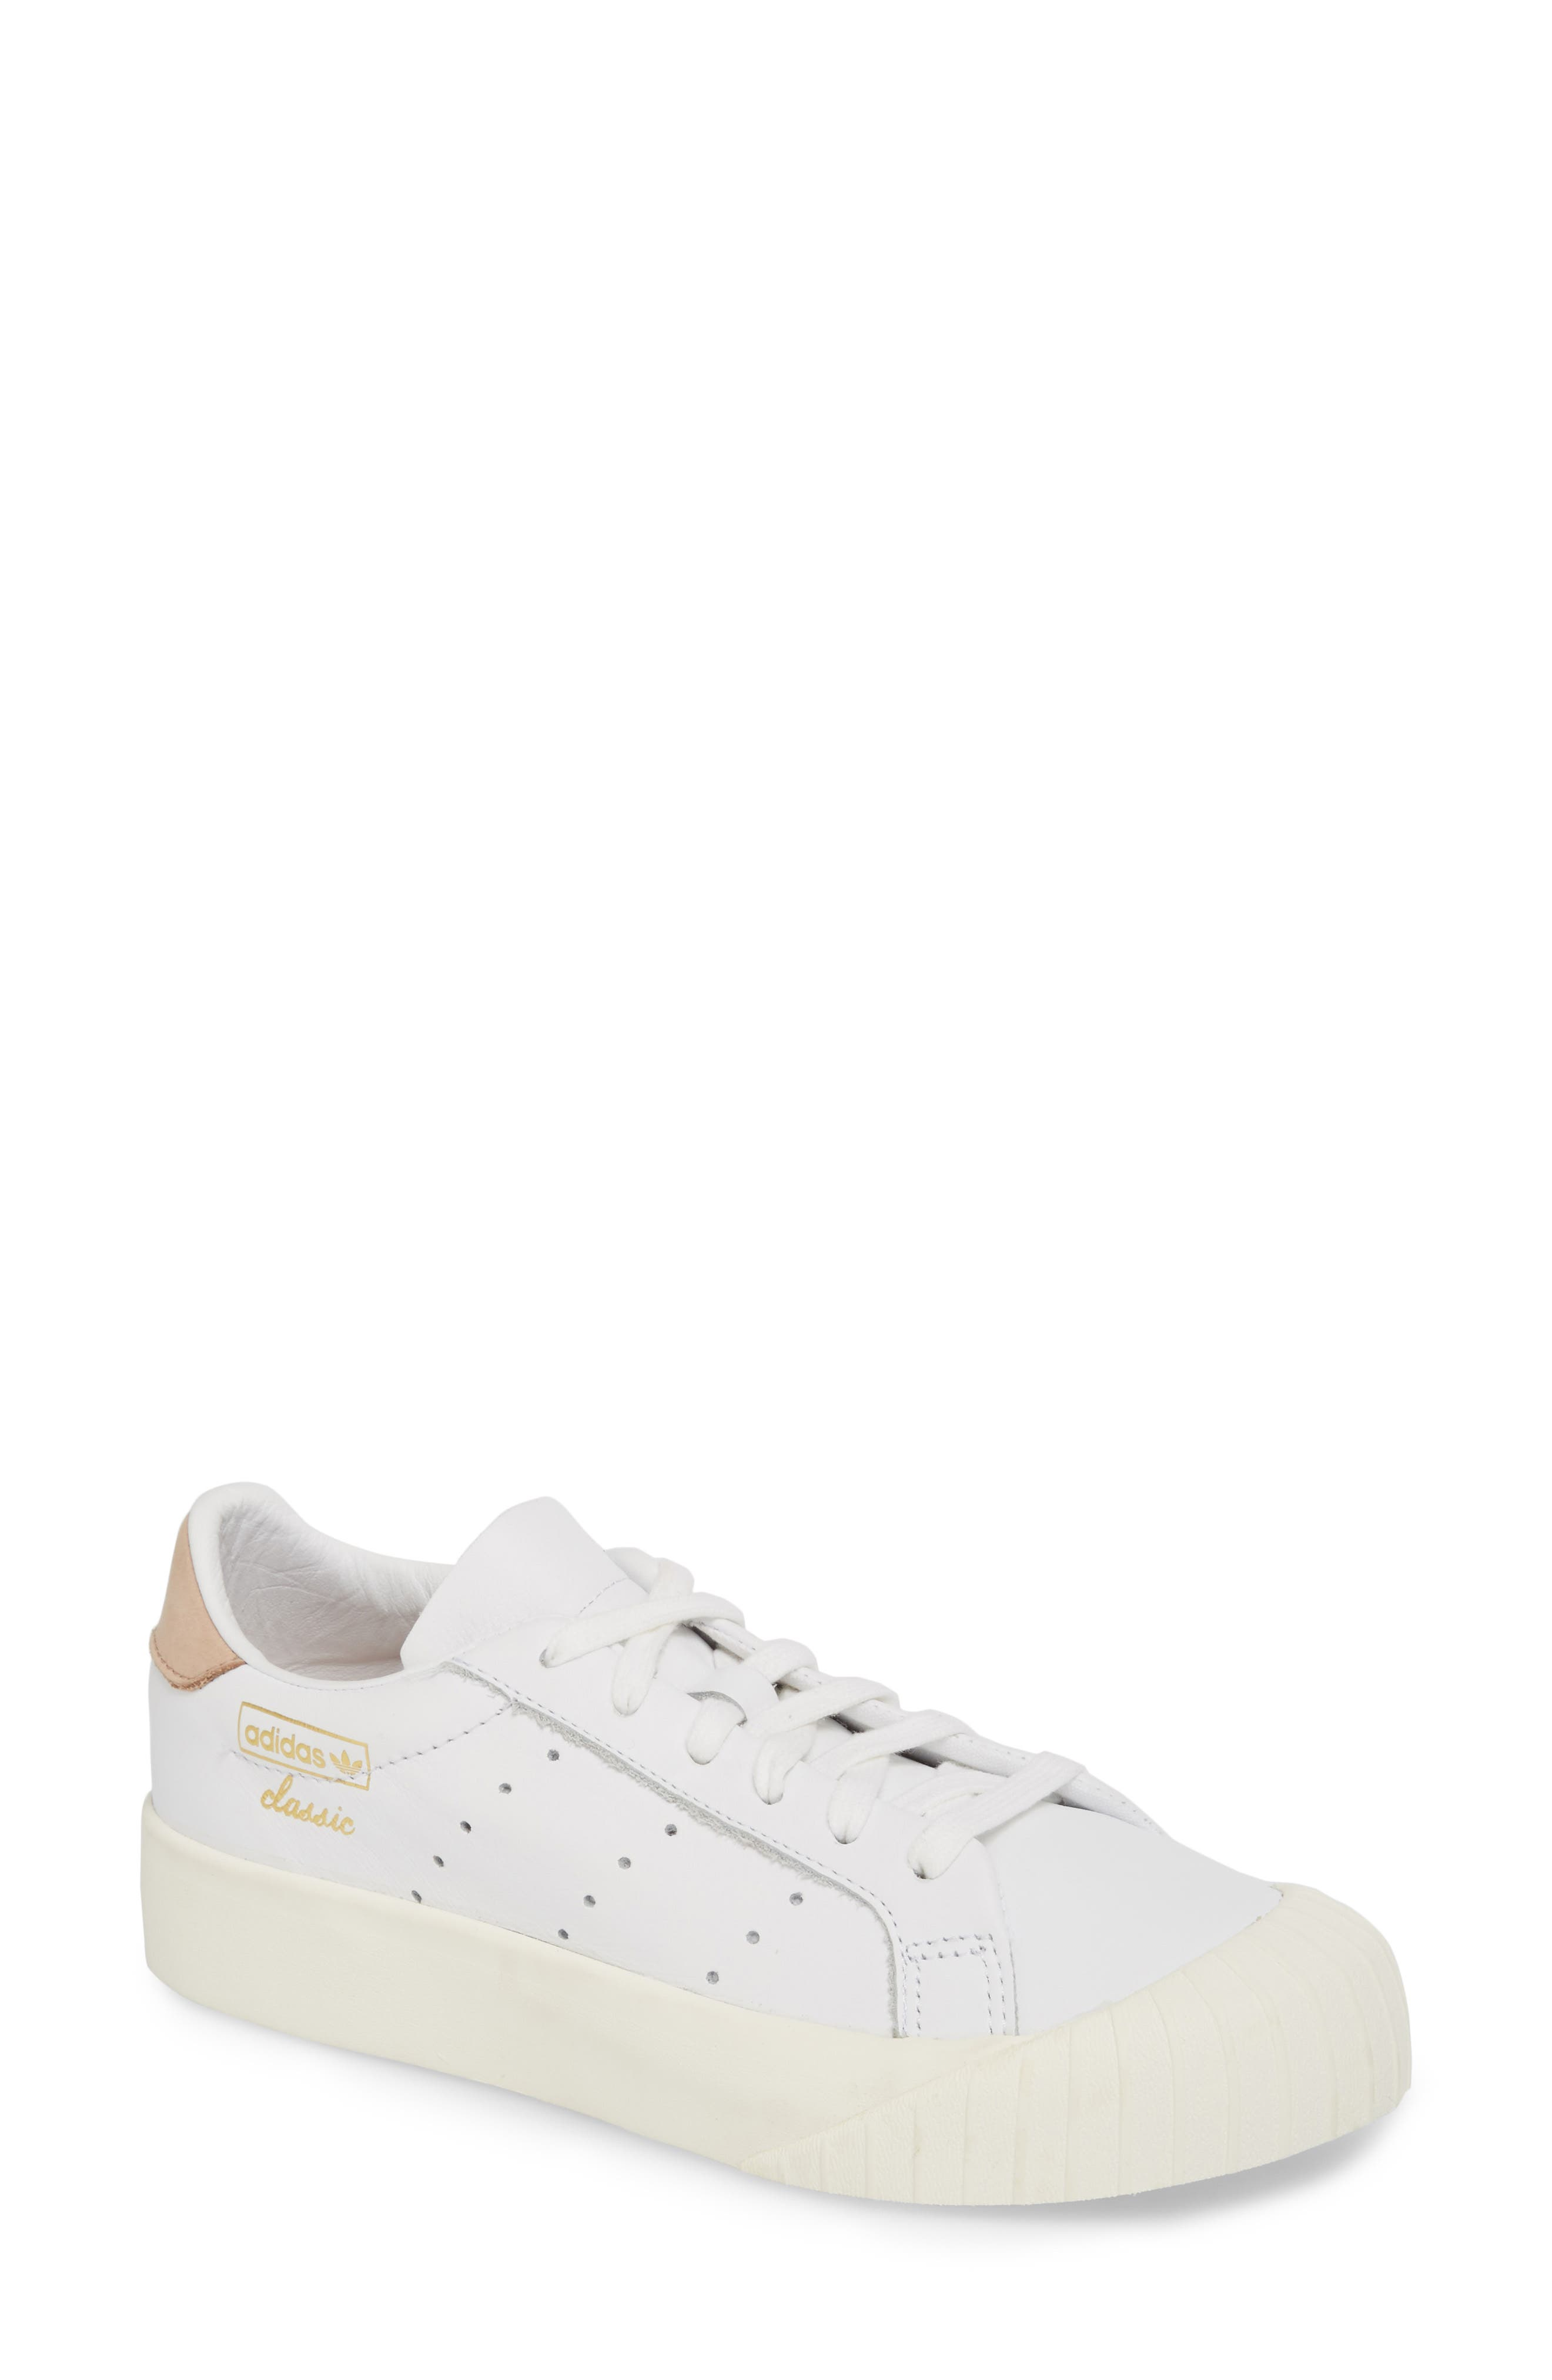 Everyn Perforated Low Top Sneaker,                         Main,                         color, White/ White/ Ash Pearl